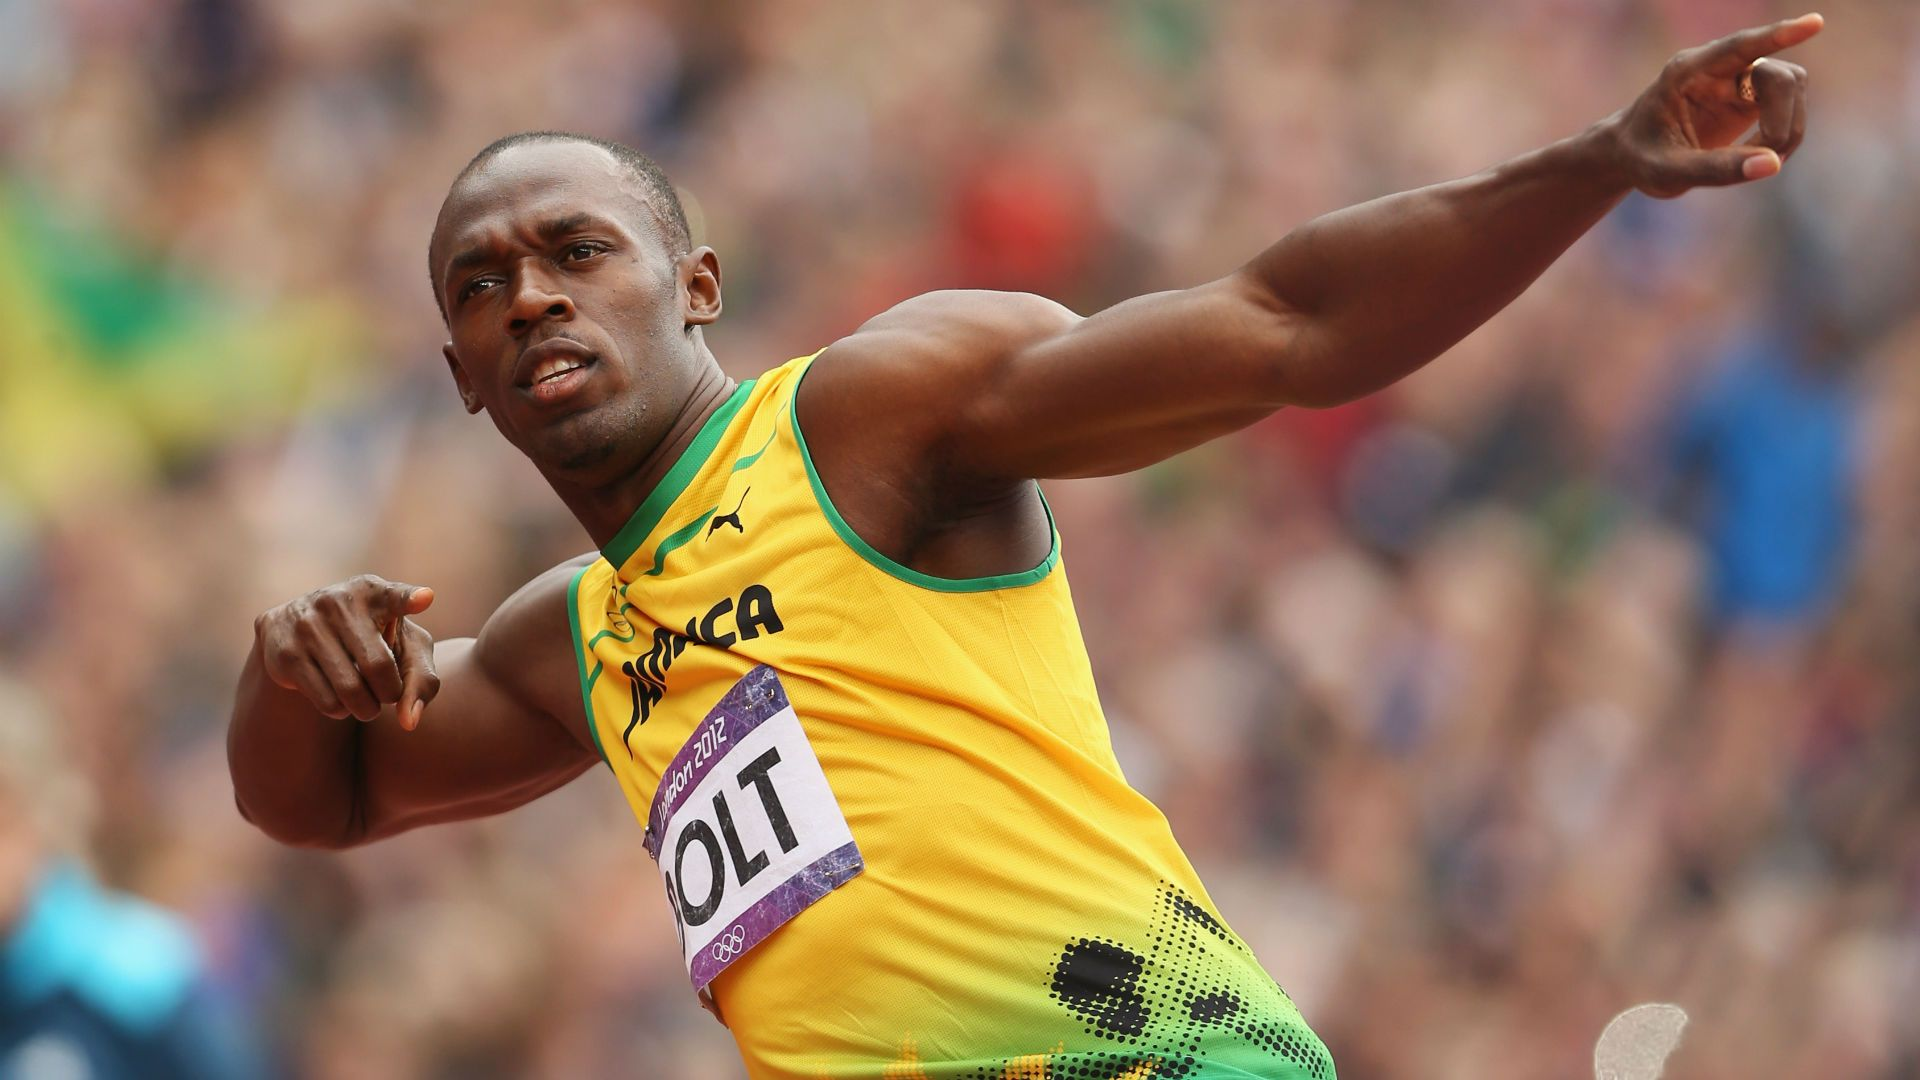 Usain Bolt might consider 2020 Olympics, but says he wants to go ...